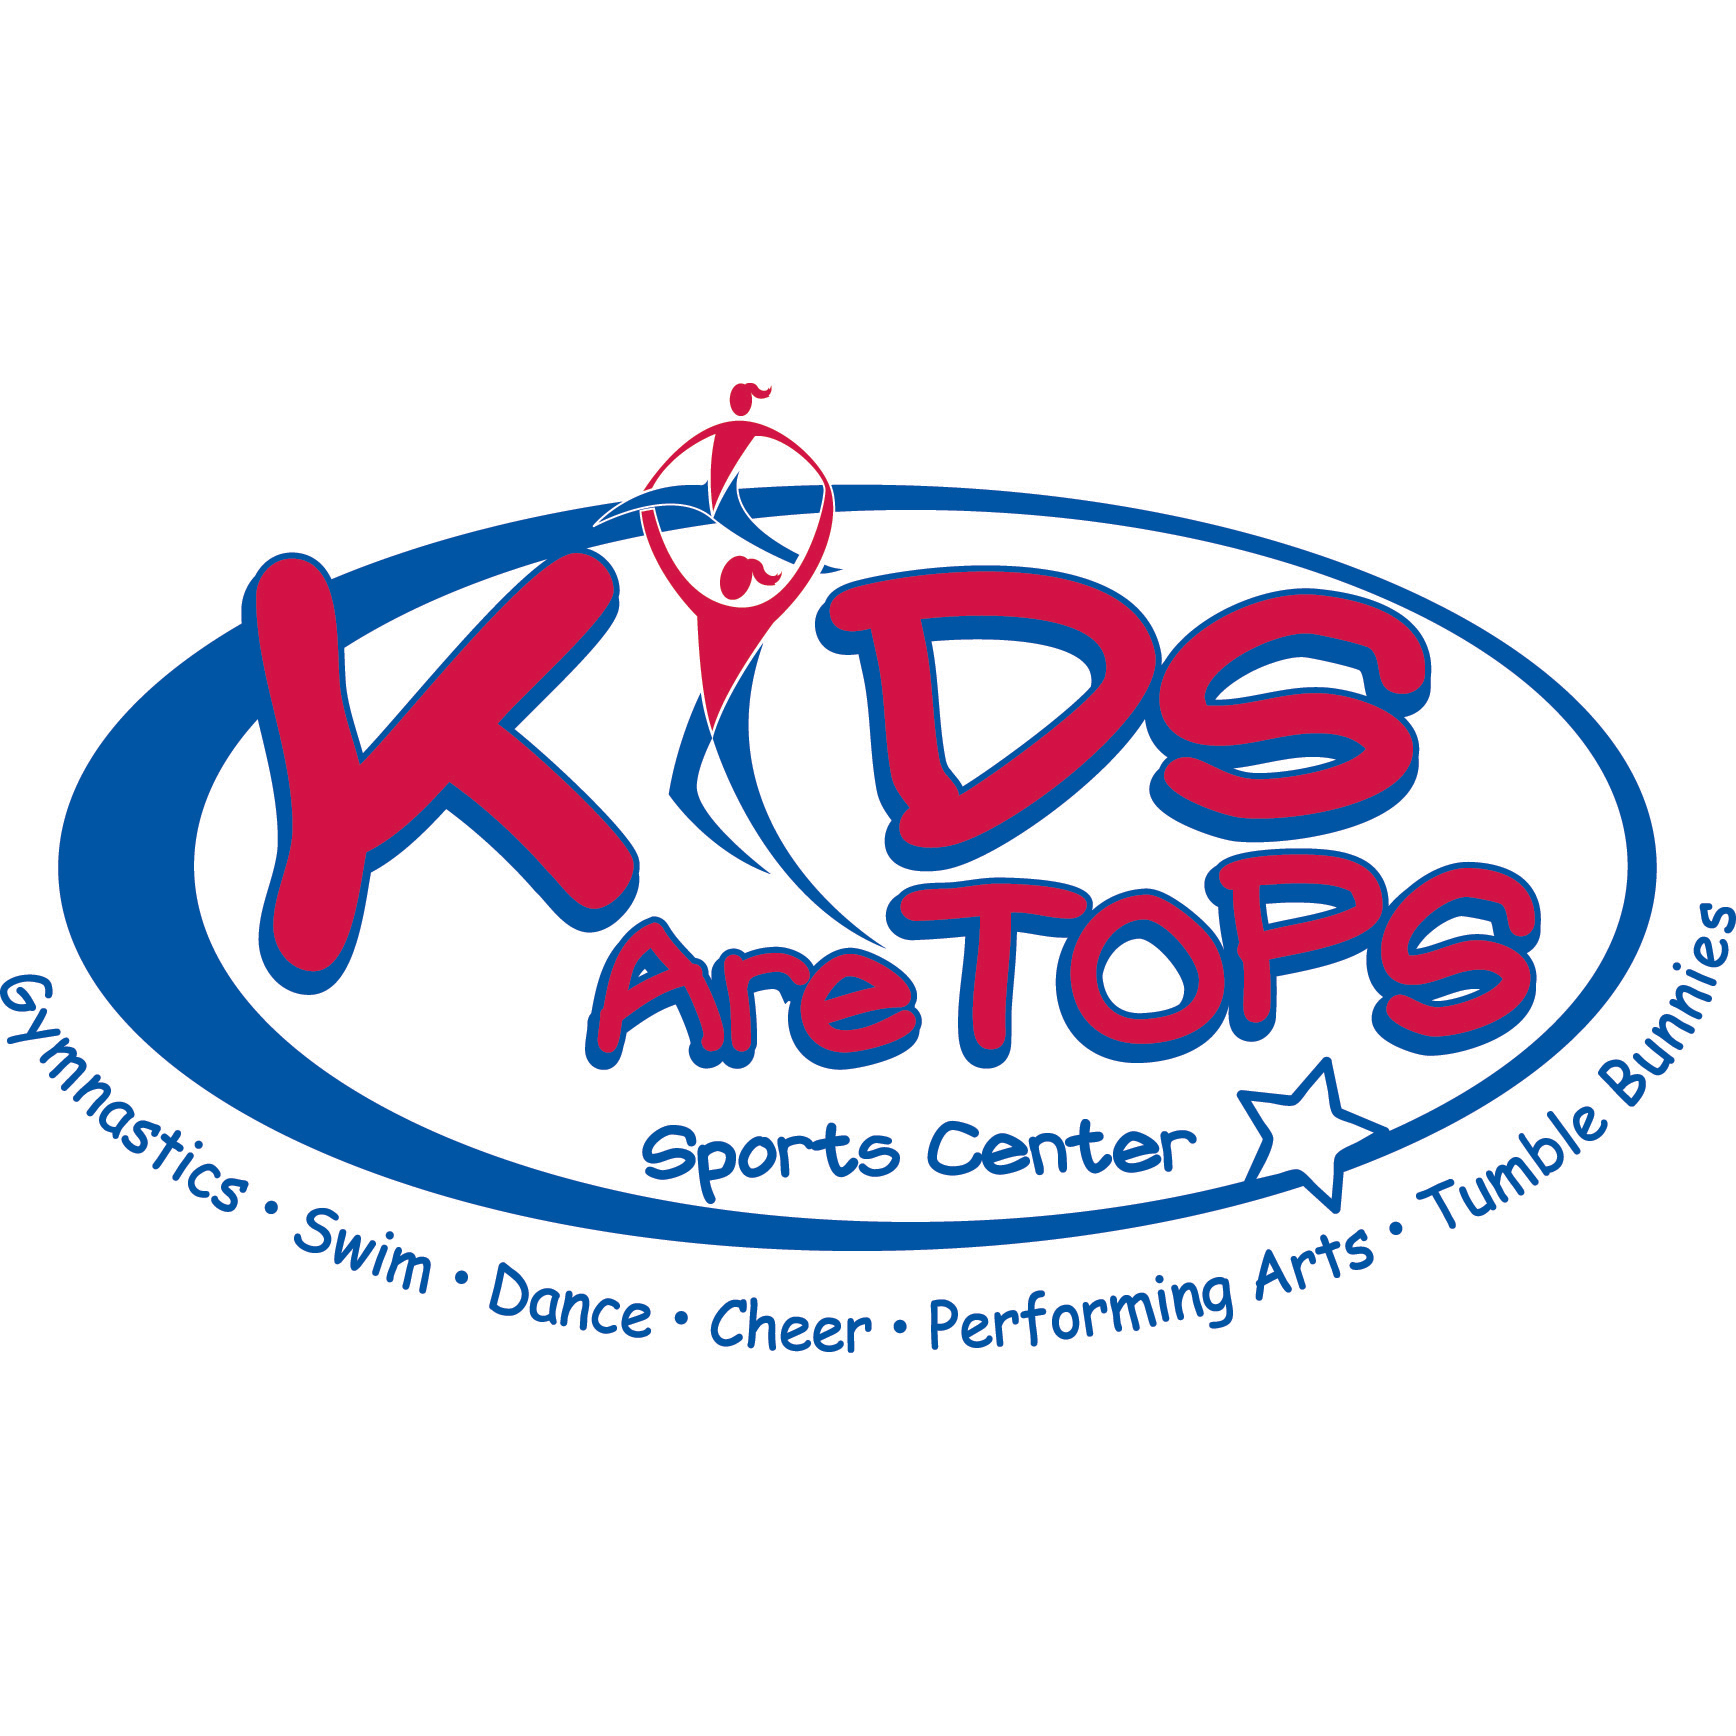 Kids Are Tops Sports Center - Centerville, OH - Sports Clubs